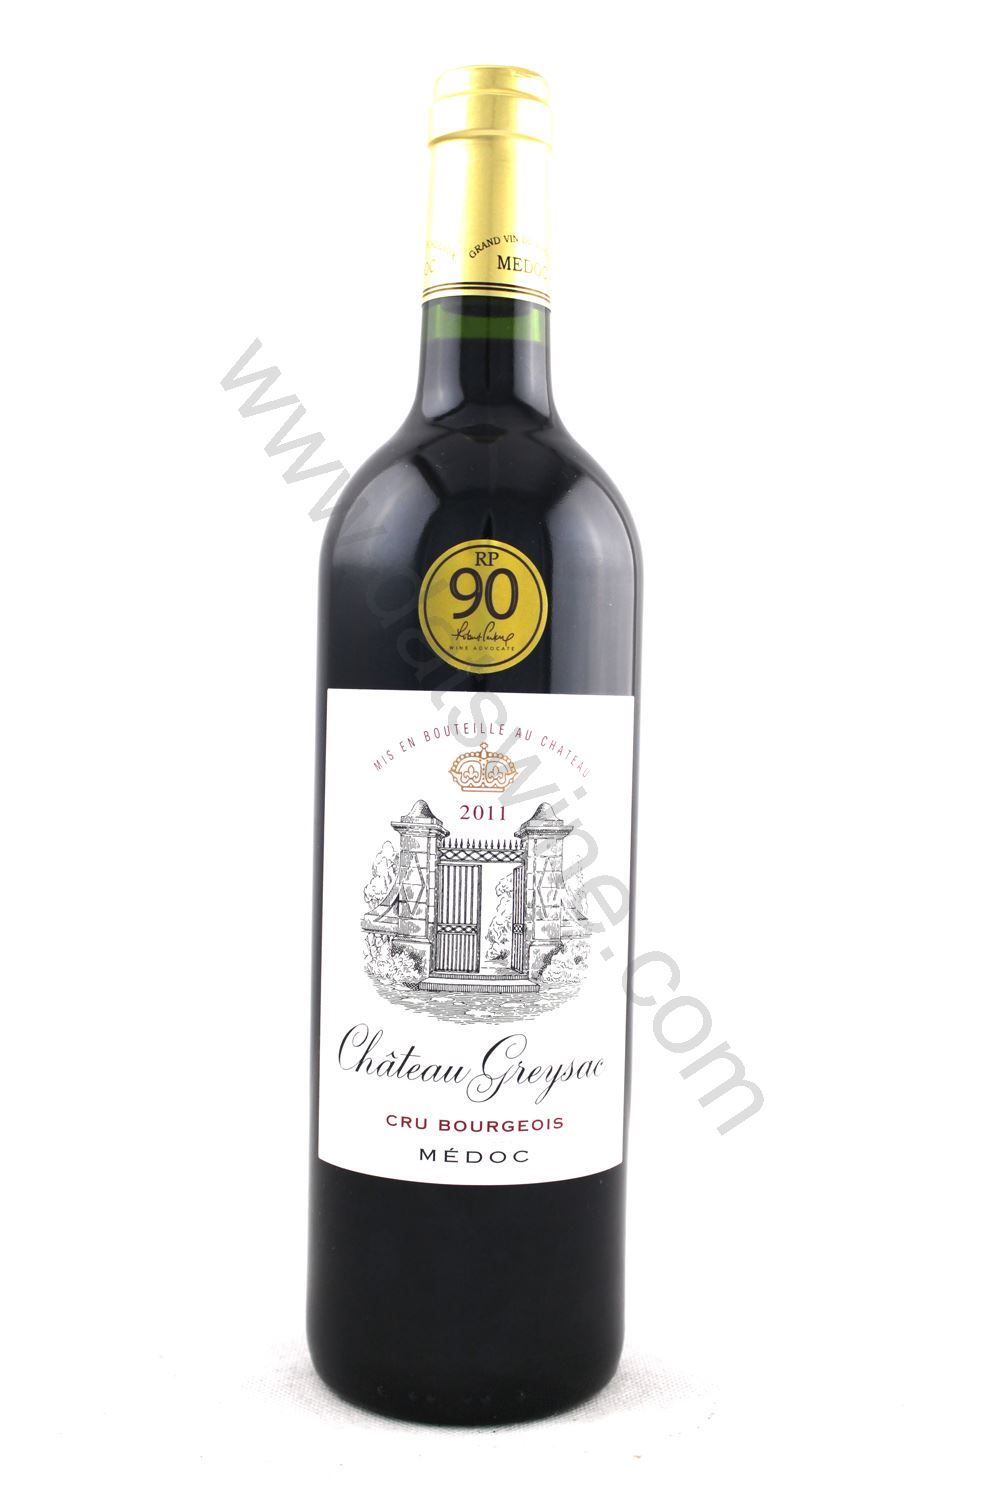 Dat S Wine 酒軒 Chateau Greysac Medoc 2011